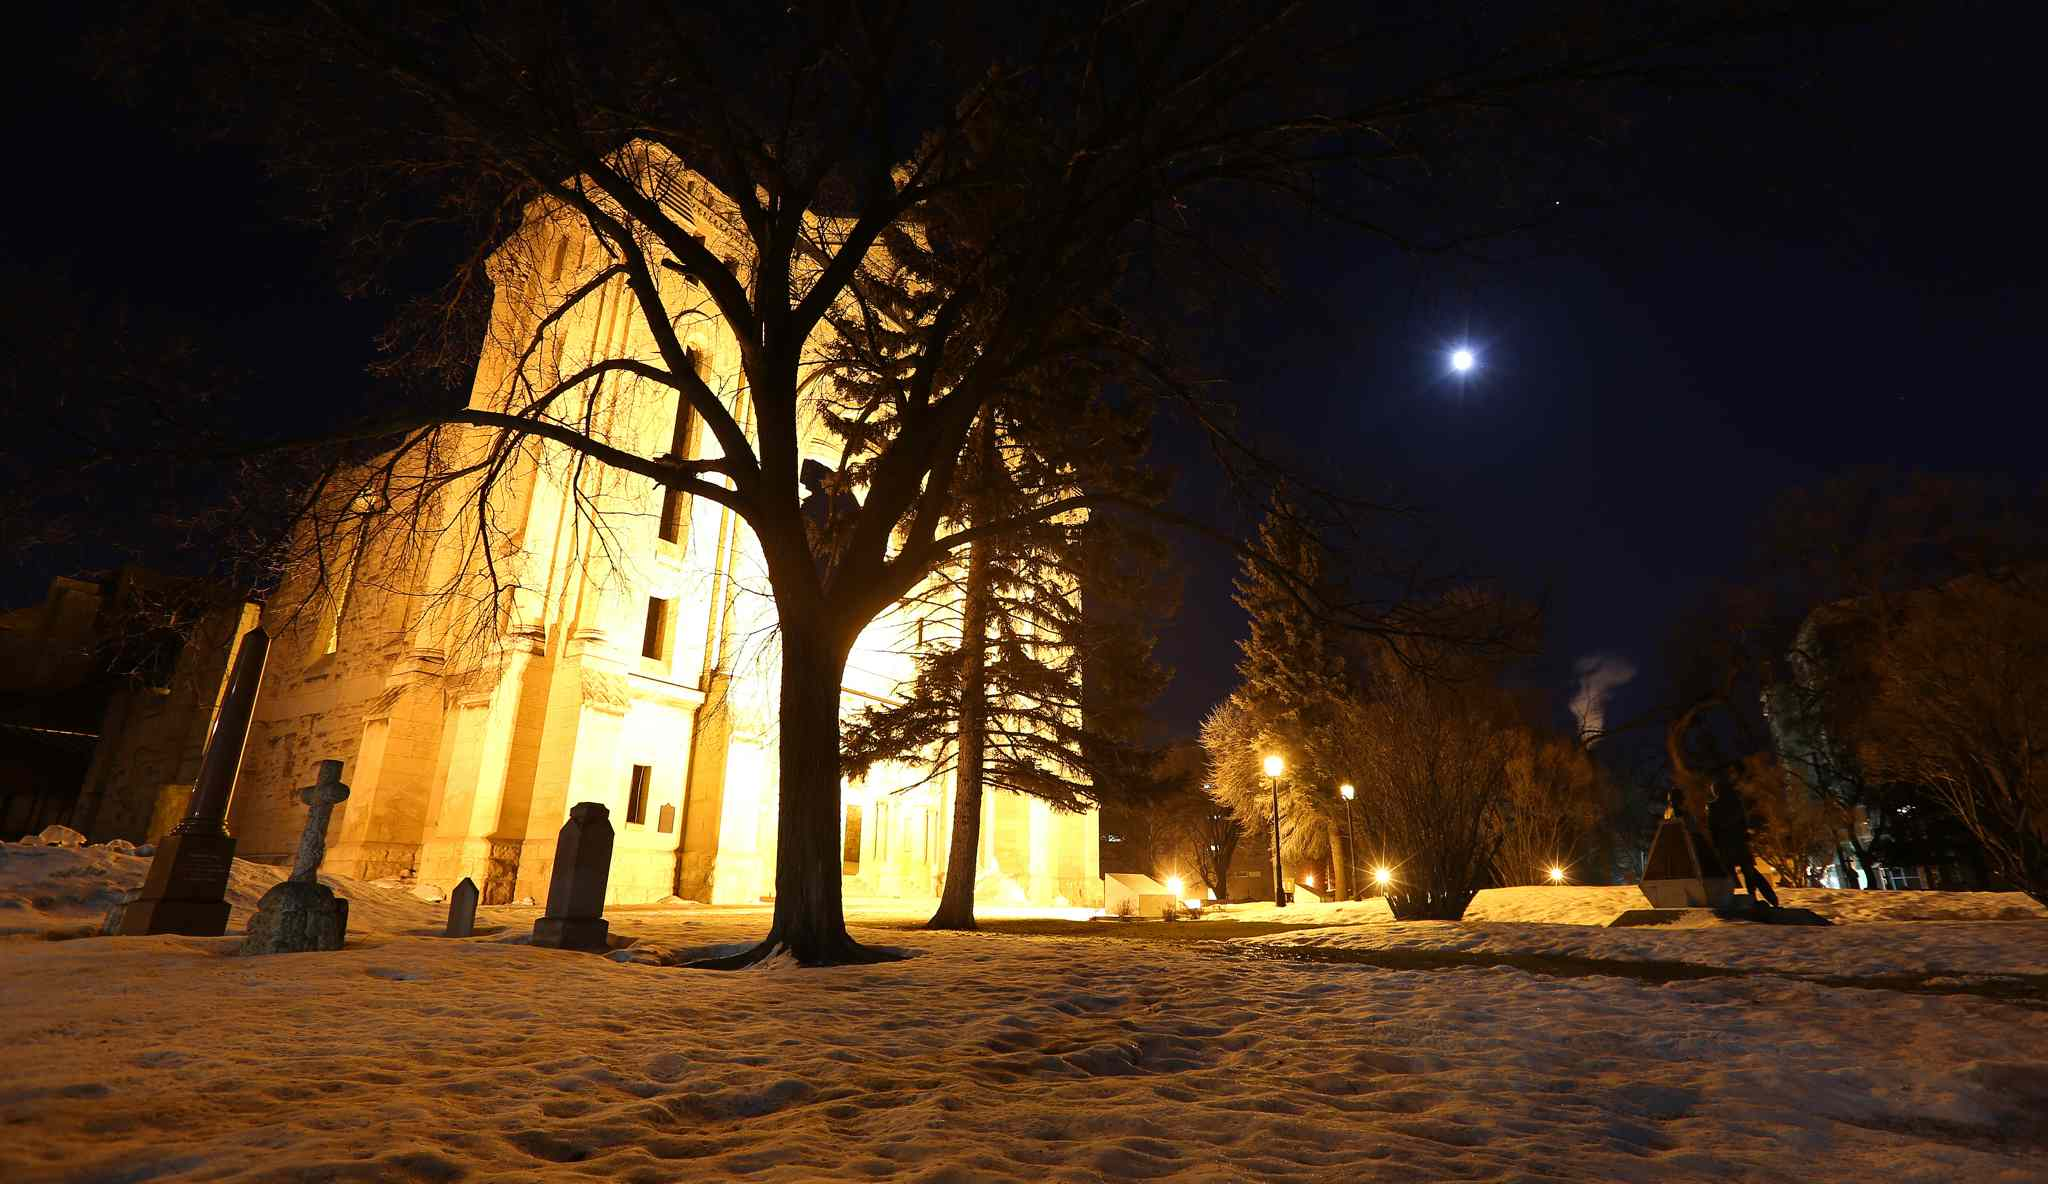 The moon is seen over the Saint Boniface Cathedral.  Tuesday's eclipse was the first of four eclipses this year and the first of four total lunar eclipses this year and next.